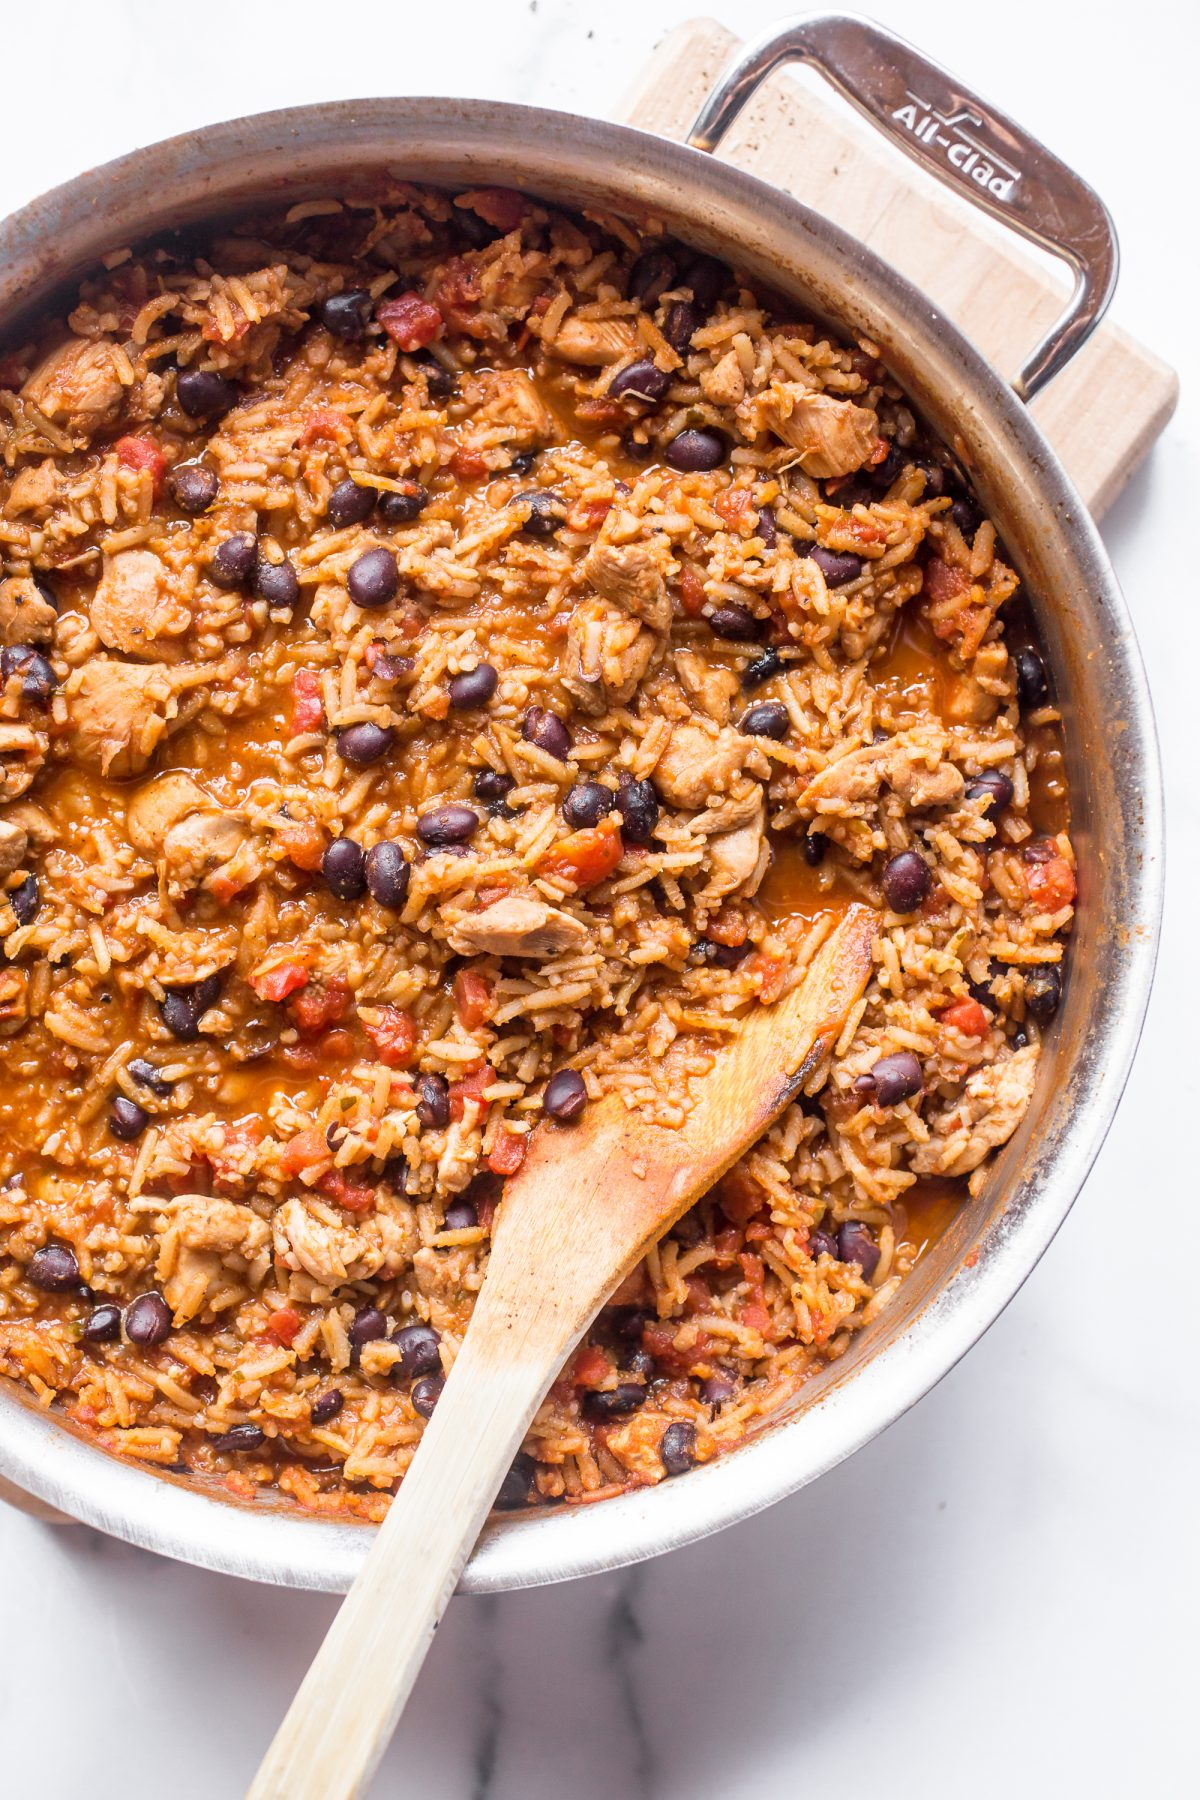 Overhead photo of One Pan Mexican Chicken and Rice. There is a wooden spoon in the pan. There is no cheese covering the chicken and rice in this photo.